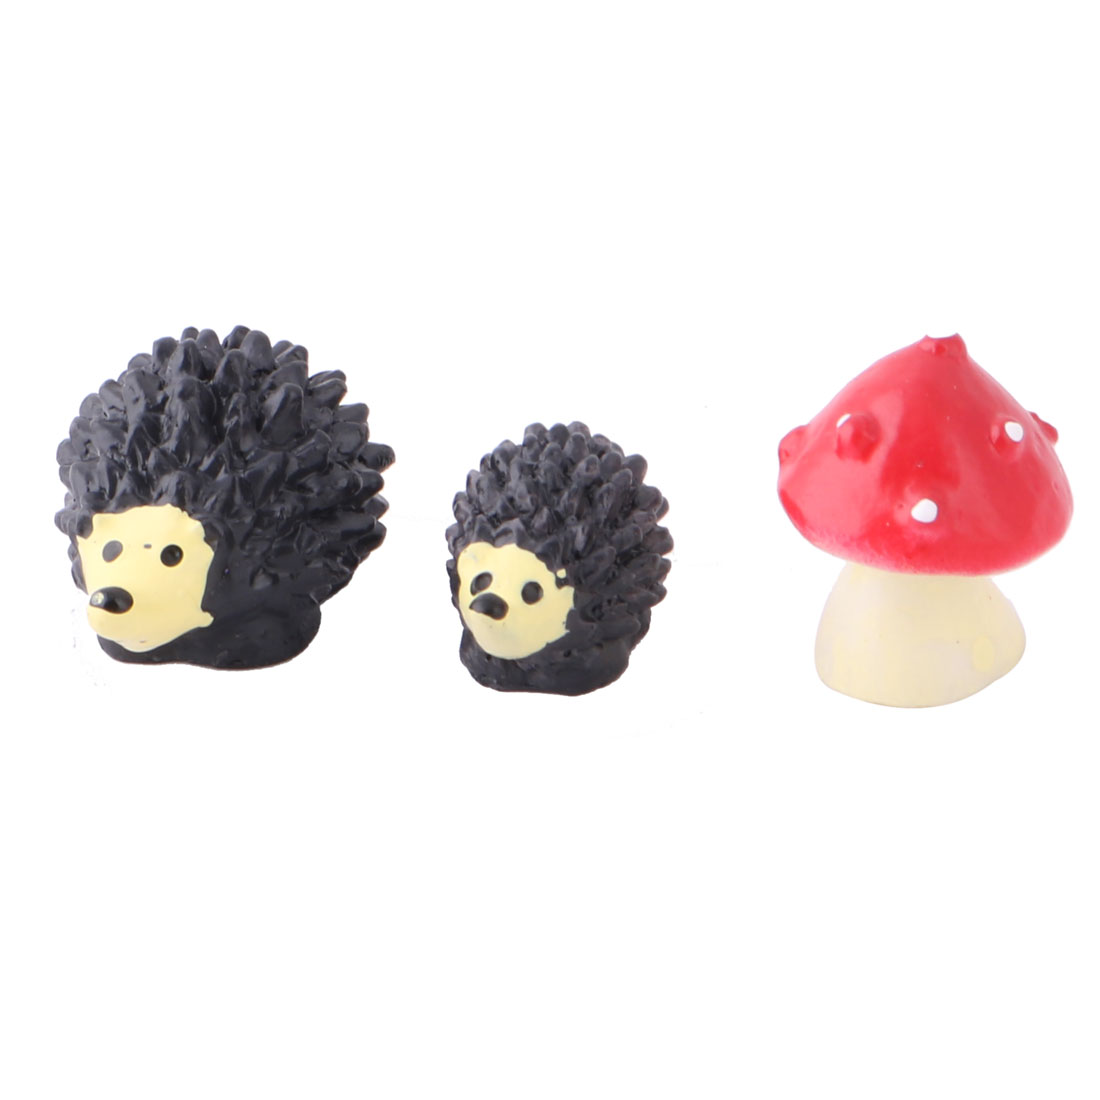 Family Resin Hedgehog Design Desk Table Decor Landscape Assorted Color 3 in 1